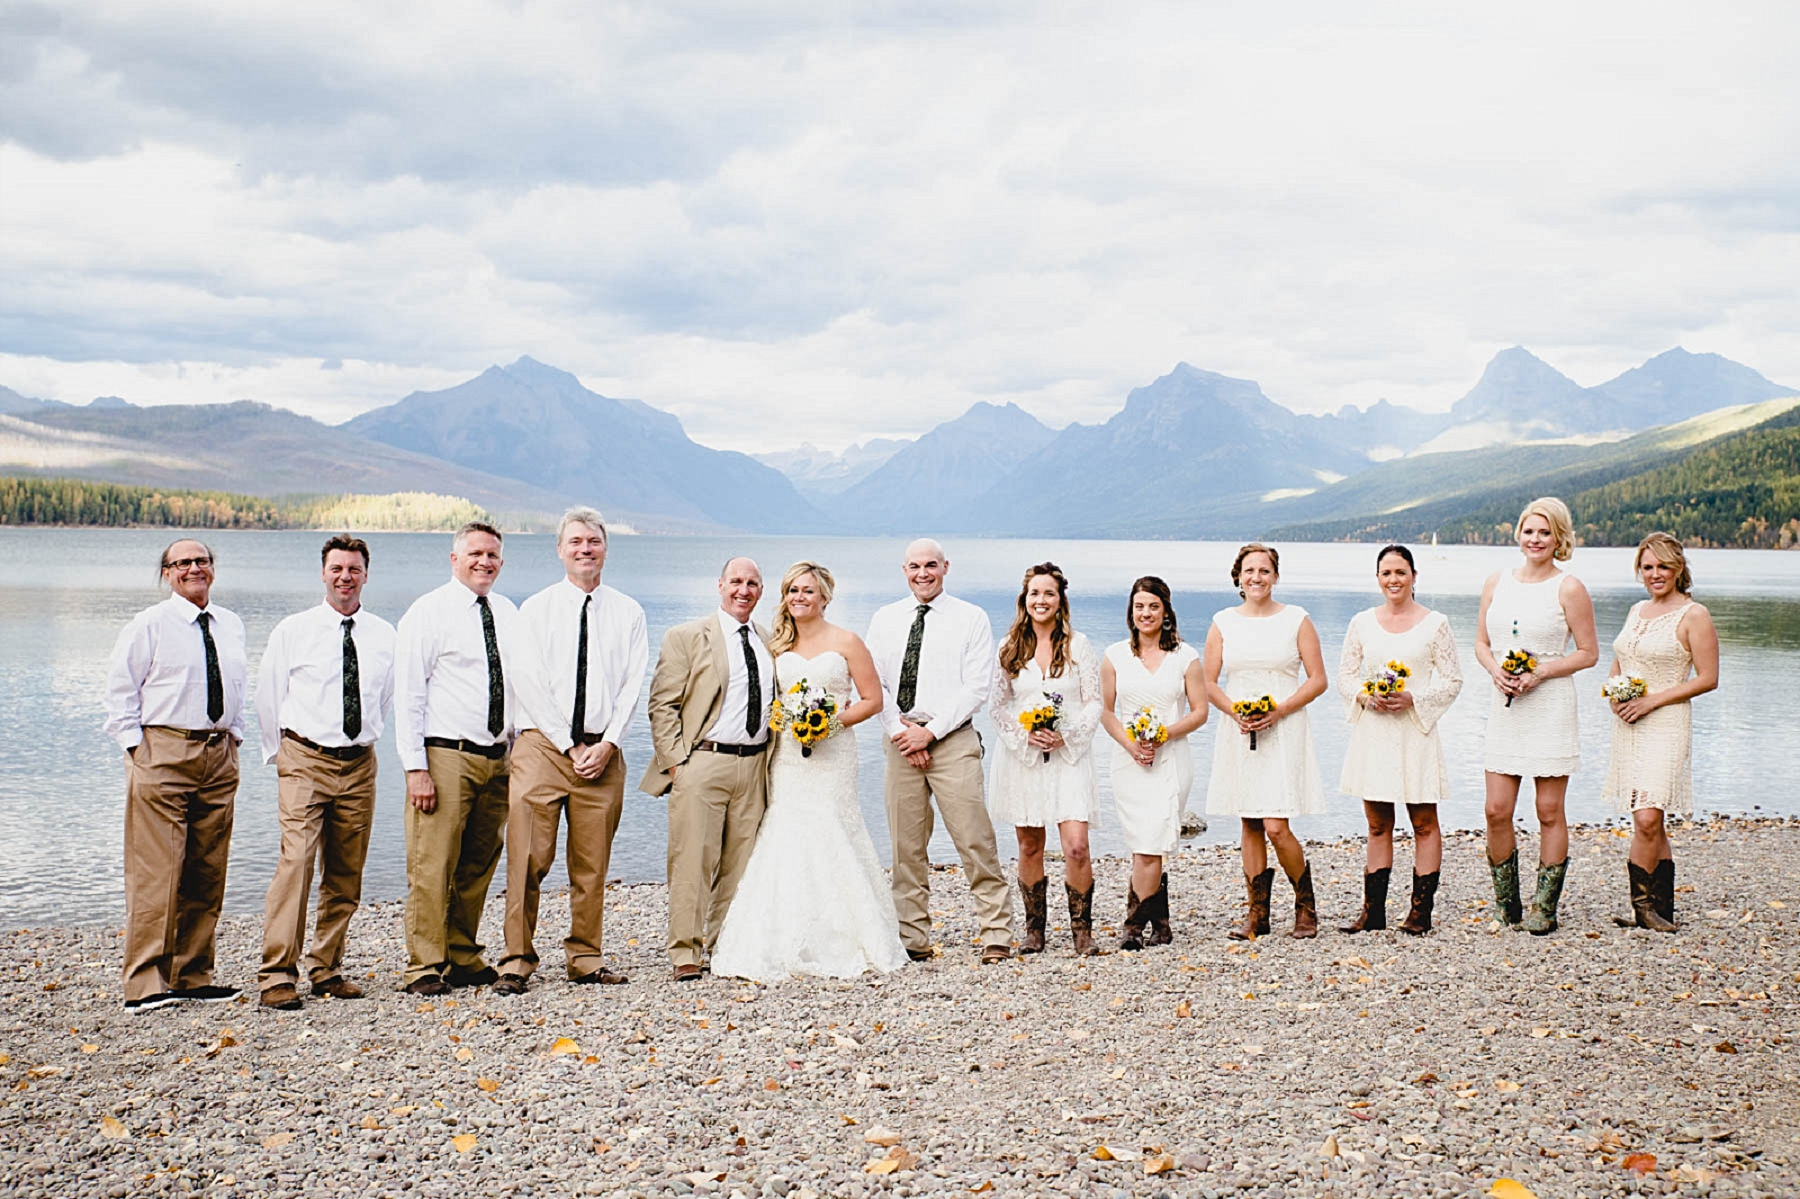 Jennifer_Mooney_photo_glacier_outdoor_center_wedding_montana_fall_elegant_rustic_romantic-92.jpg